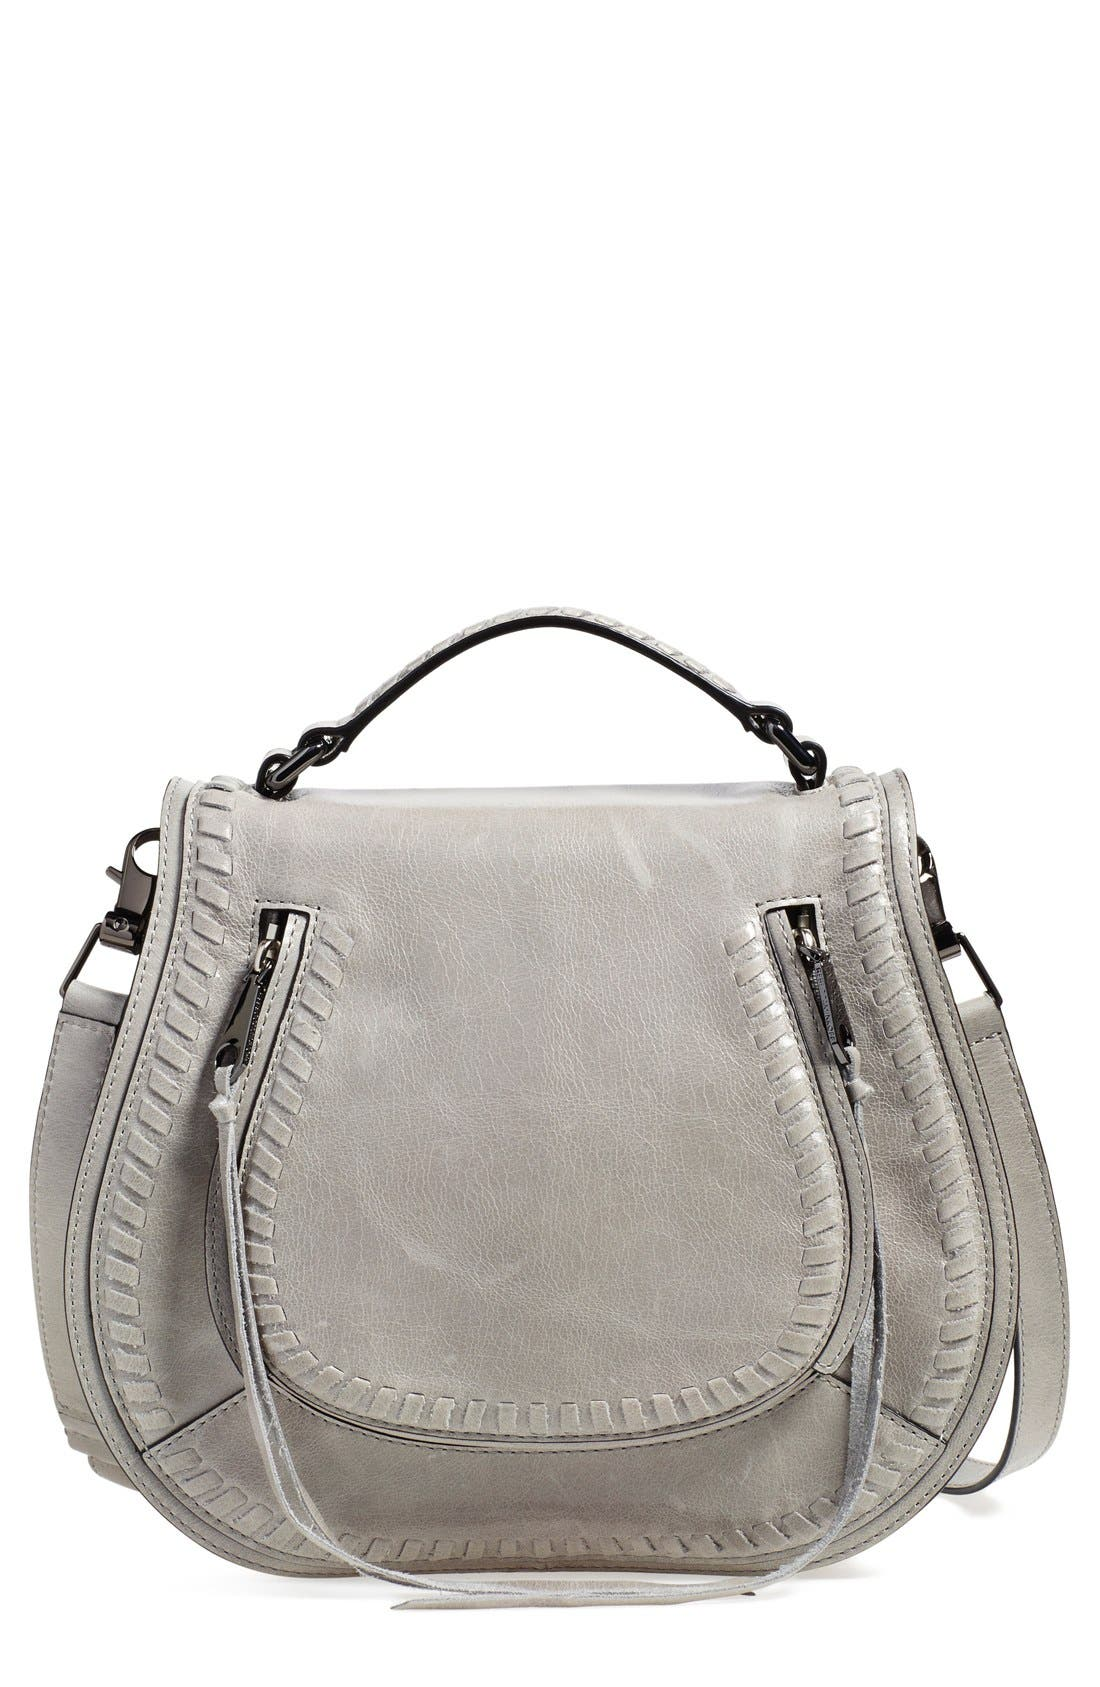 Vanity Saddle Bag,                             Main thumbnail 1, color,                             Cemento/ Silver Hrdwr